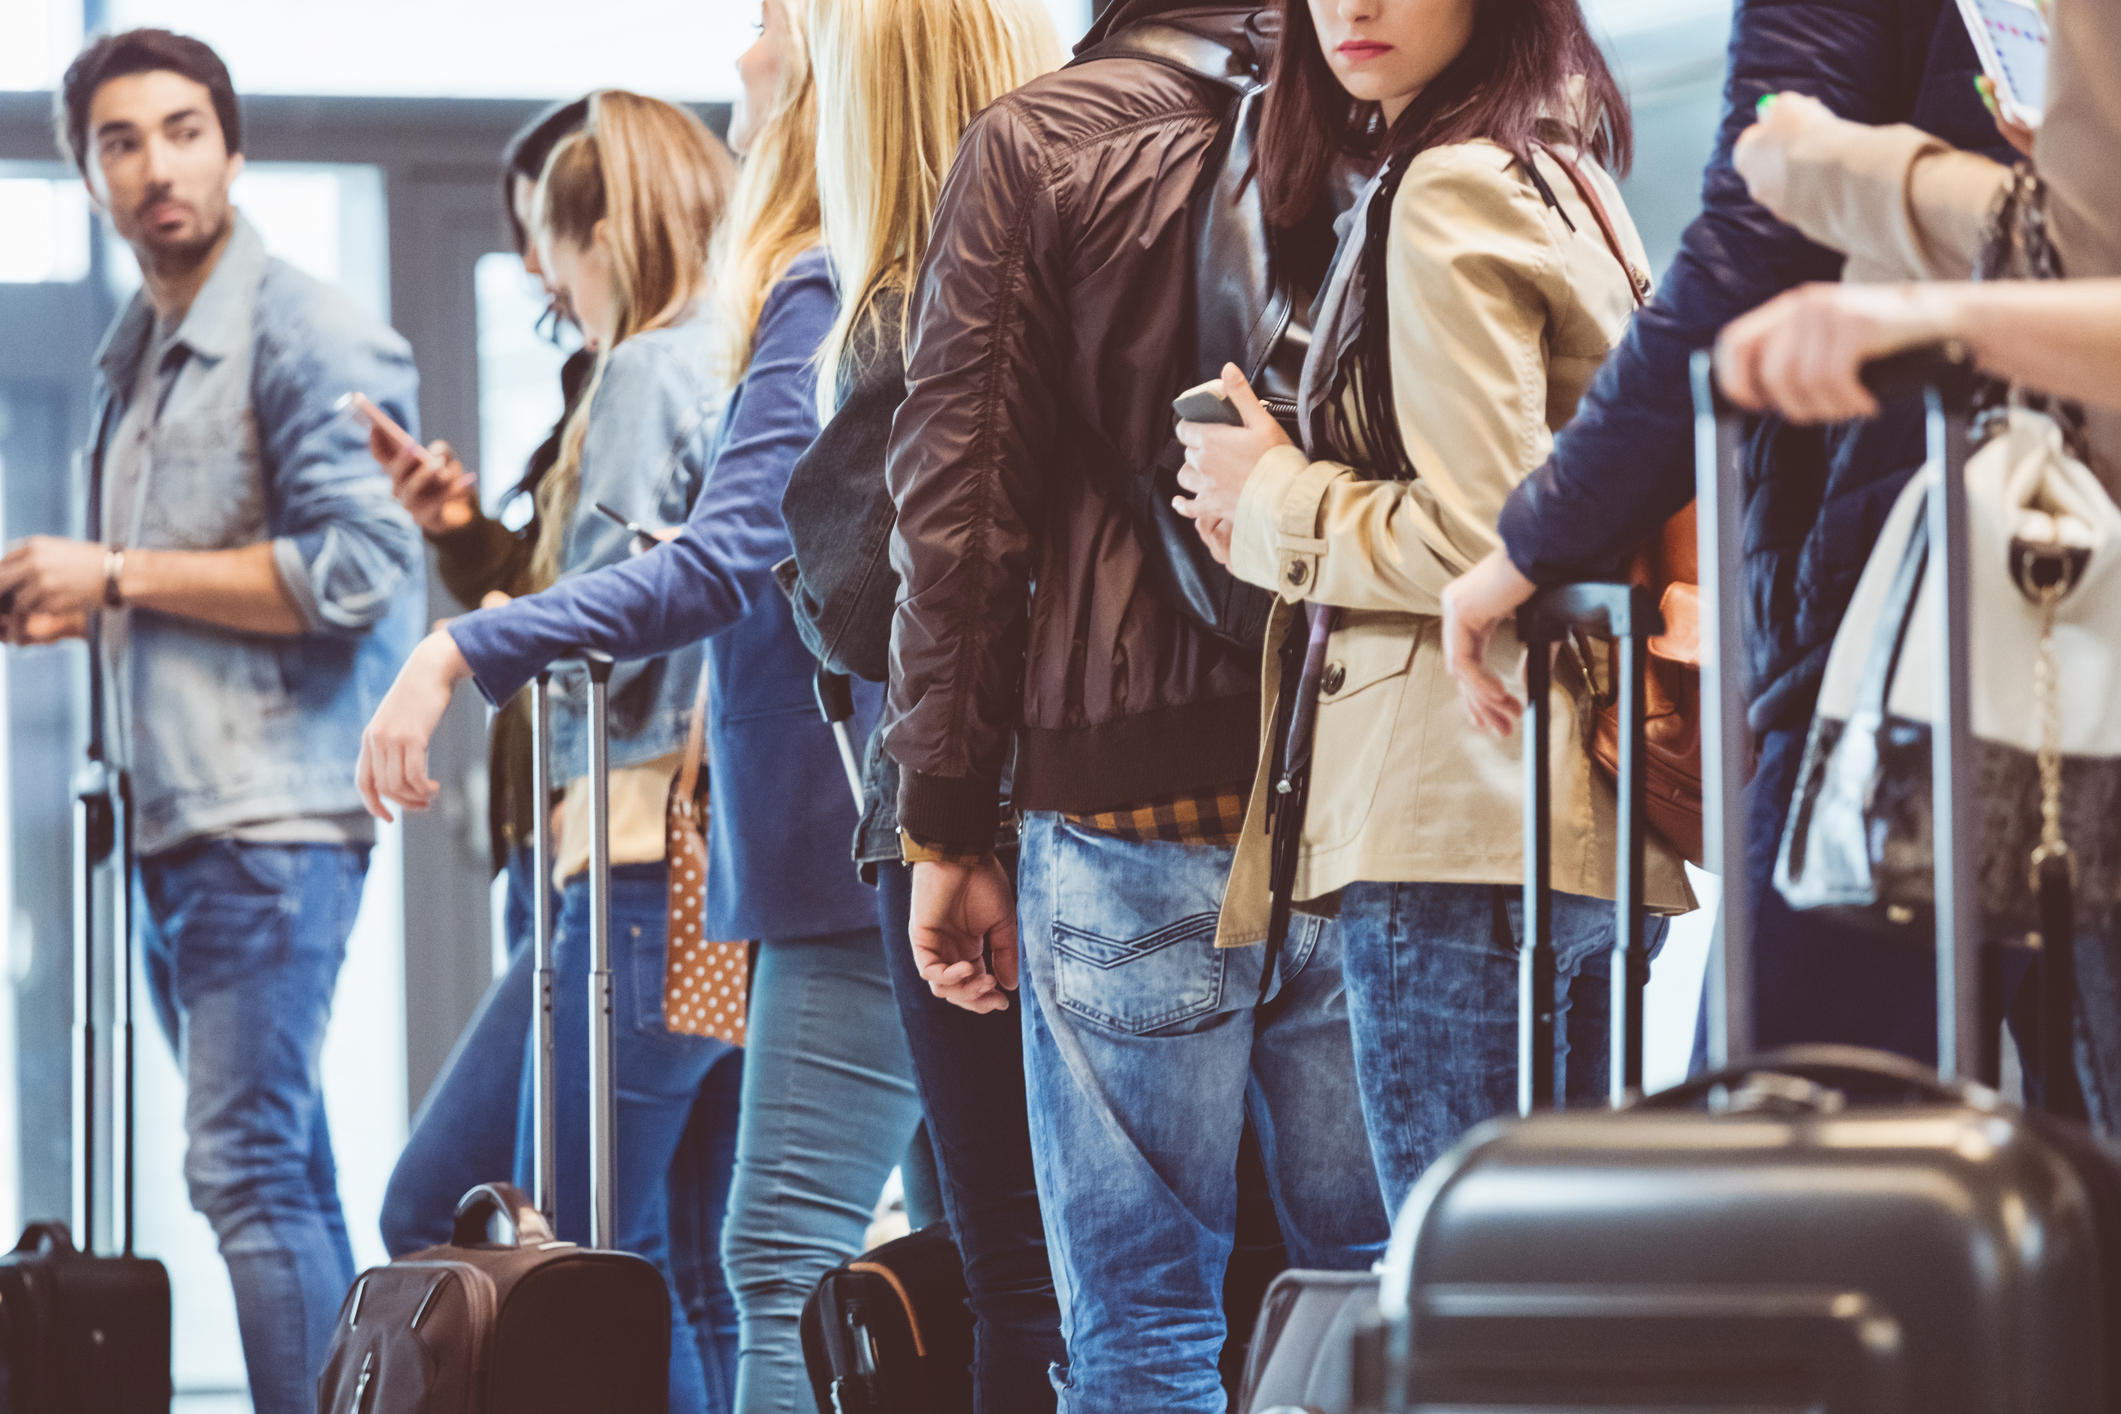 The US is set to experience the highest volume of Thanksgiving travellers since 2005.